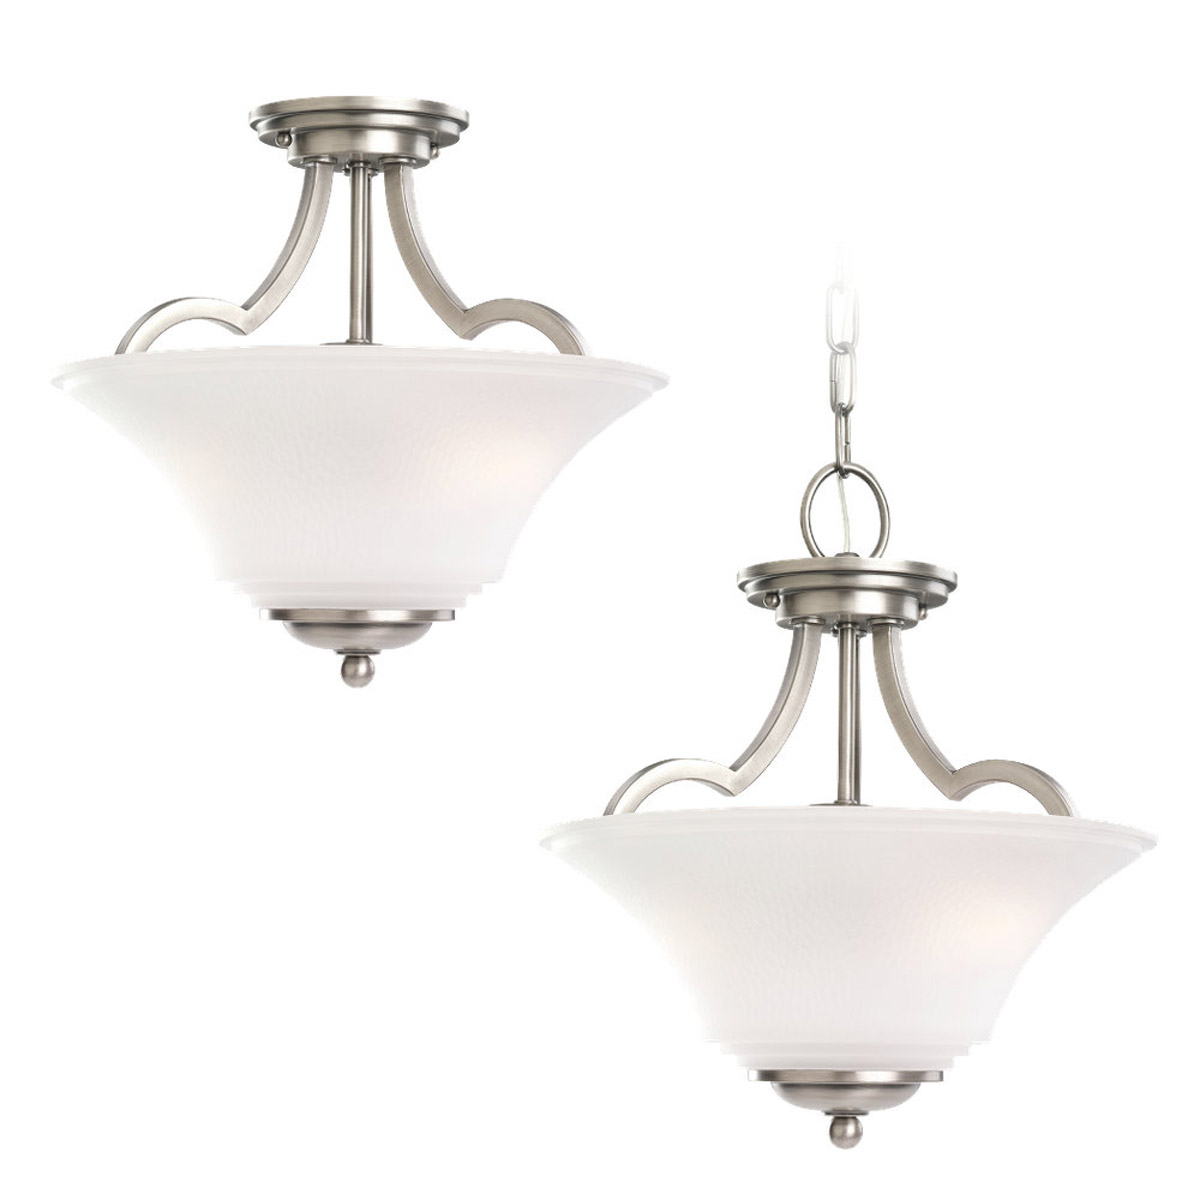 Sea Gull Lighting Somerton 2 Light Semi-Flush Mount in Antique Brushed Nickel 77375-965